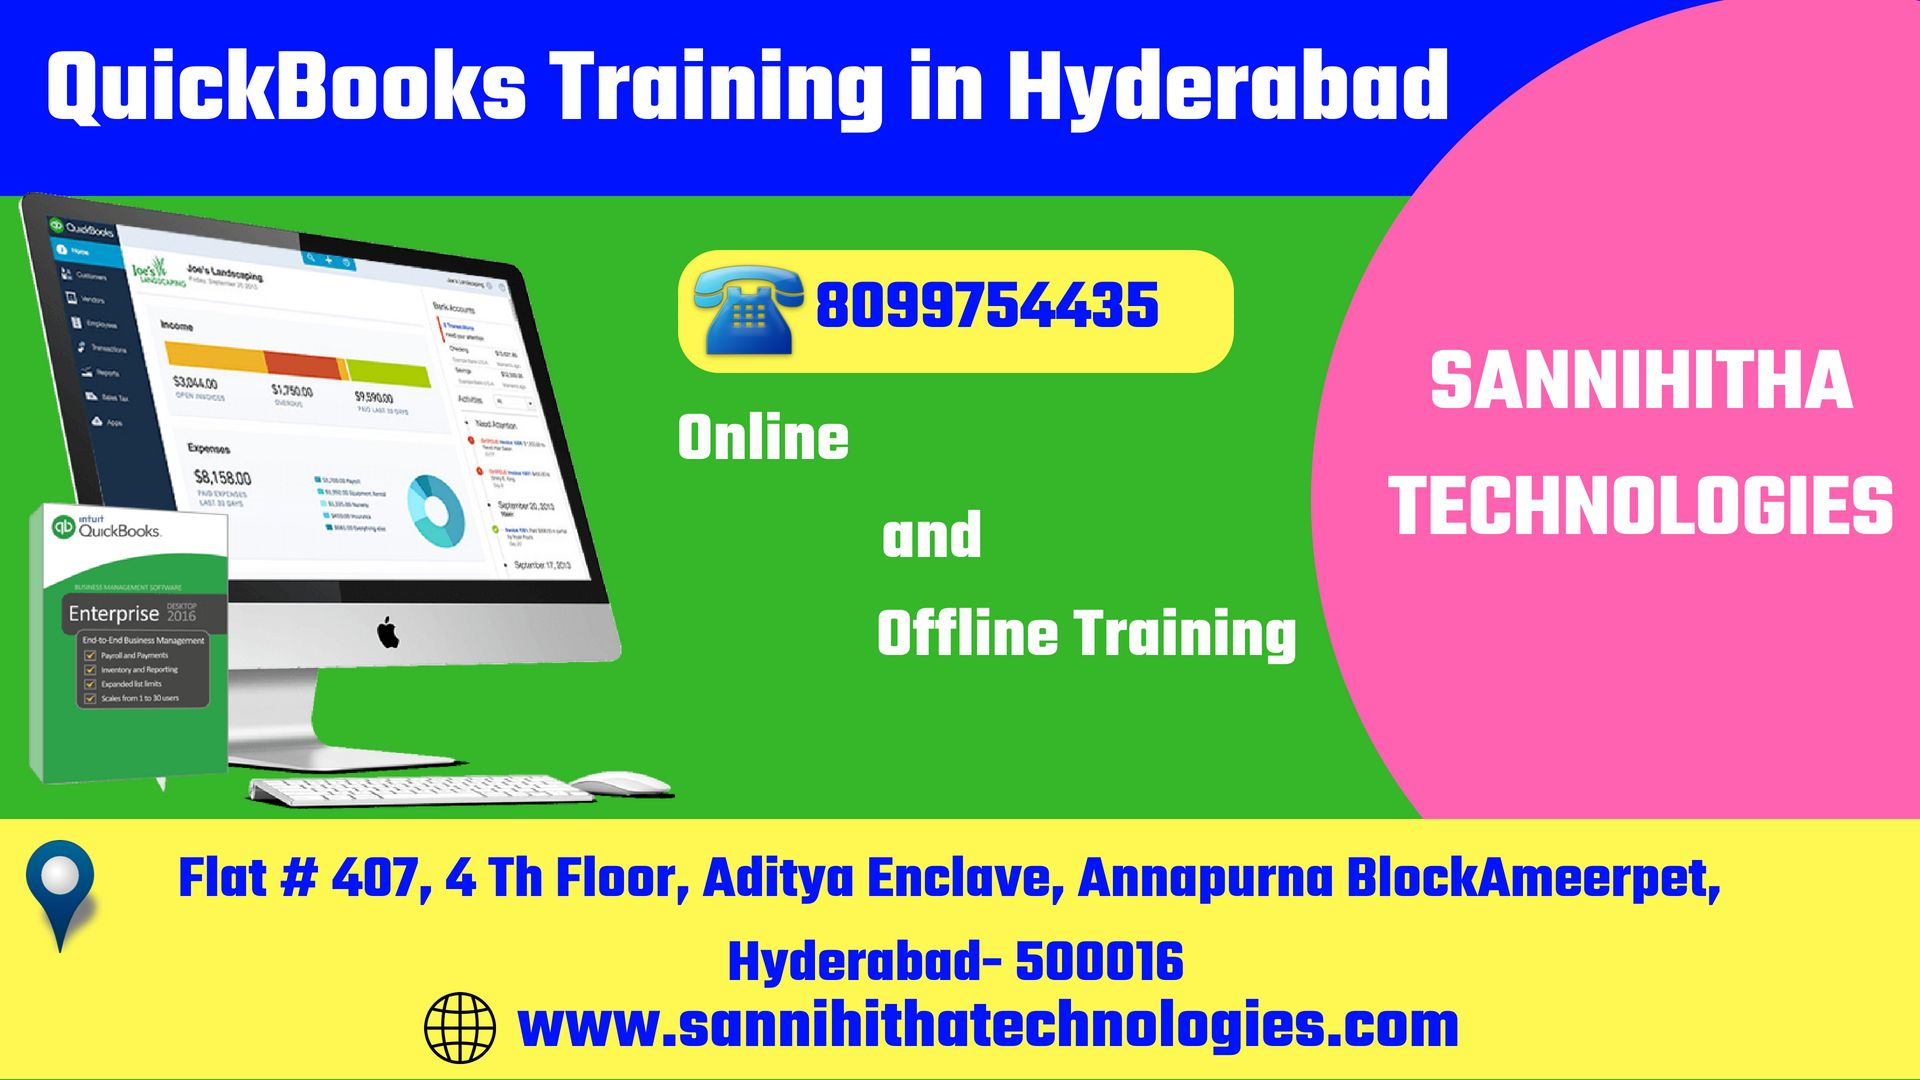 Learn Quickbooks Training in Hyderabad by experienced faculty in Accounts  and Finance, Tally ERP, Taxation, Manual Accounting, and Practical  accounting.